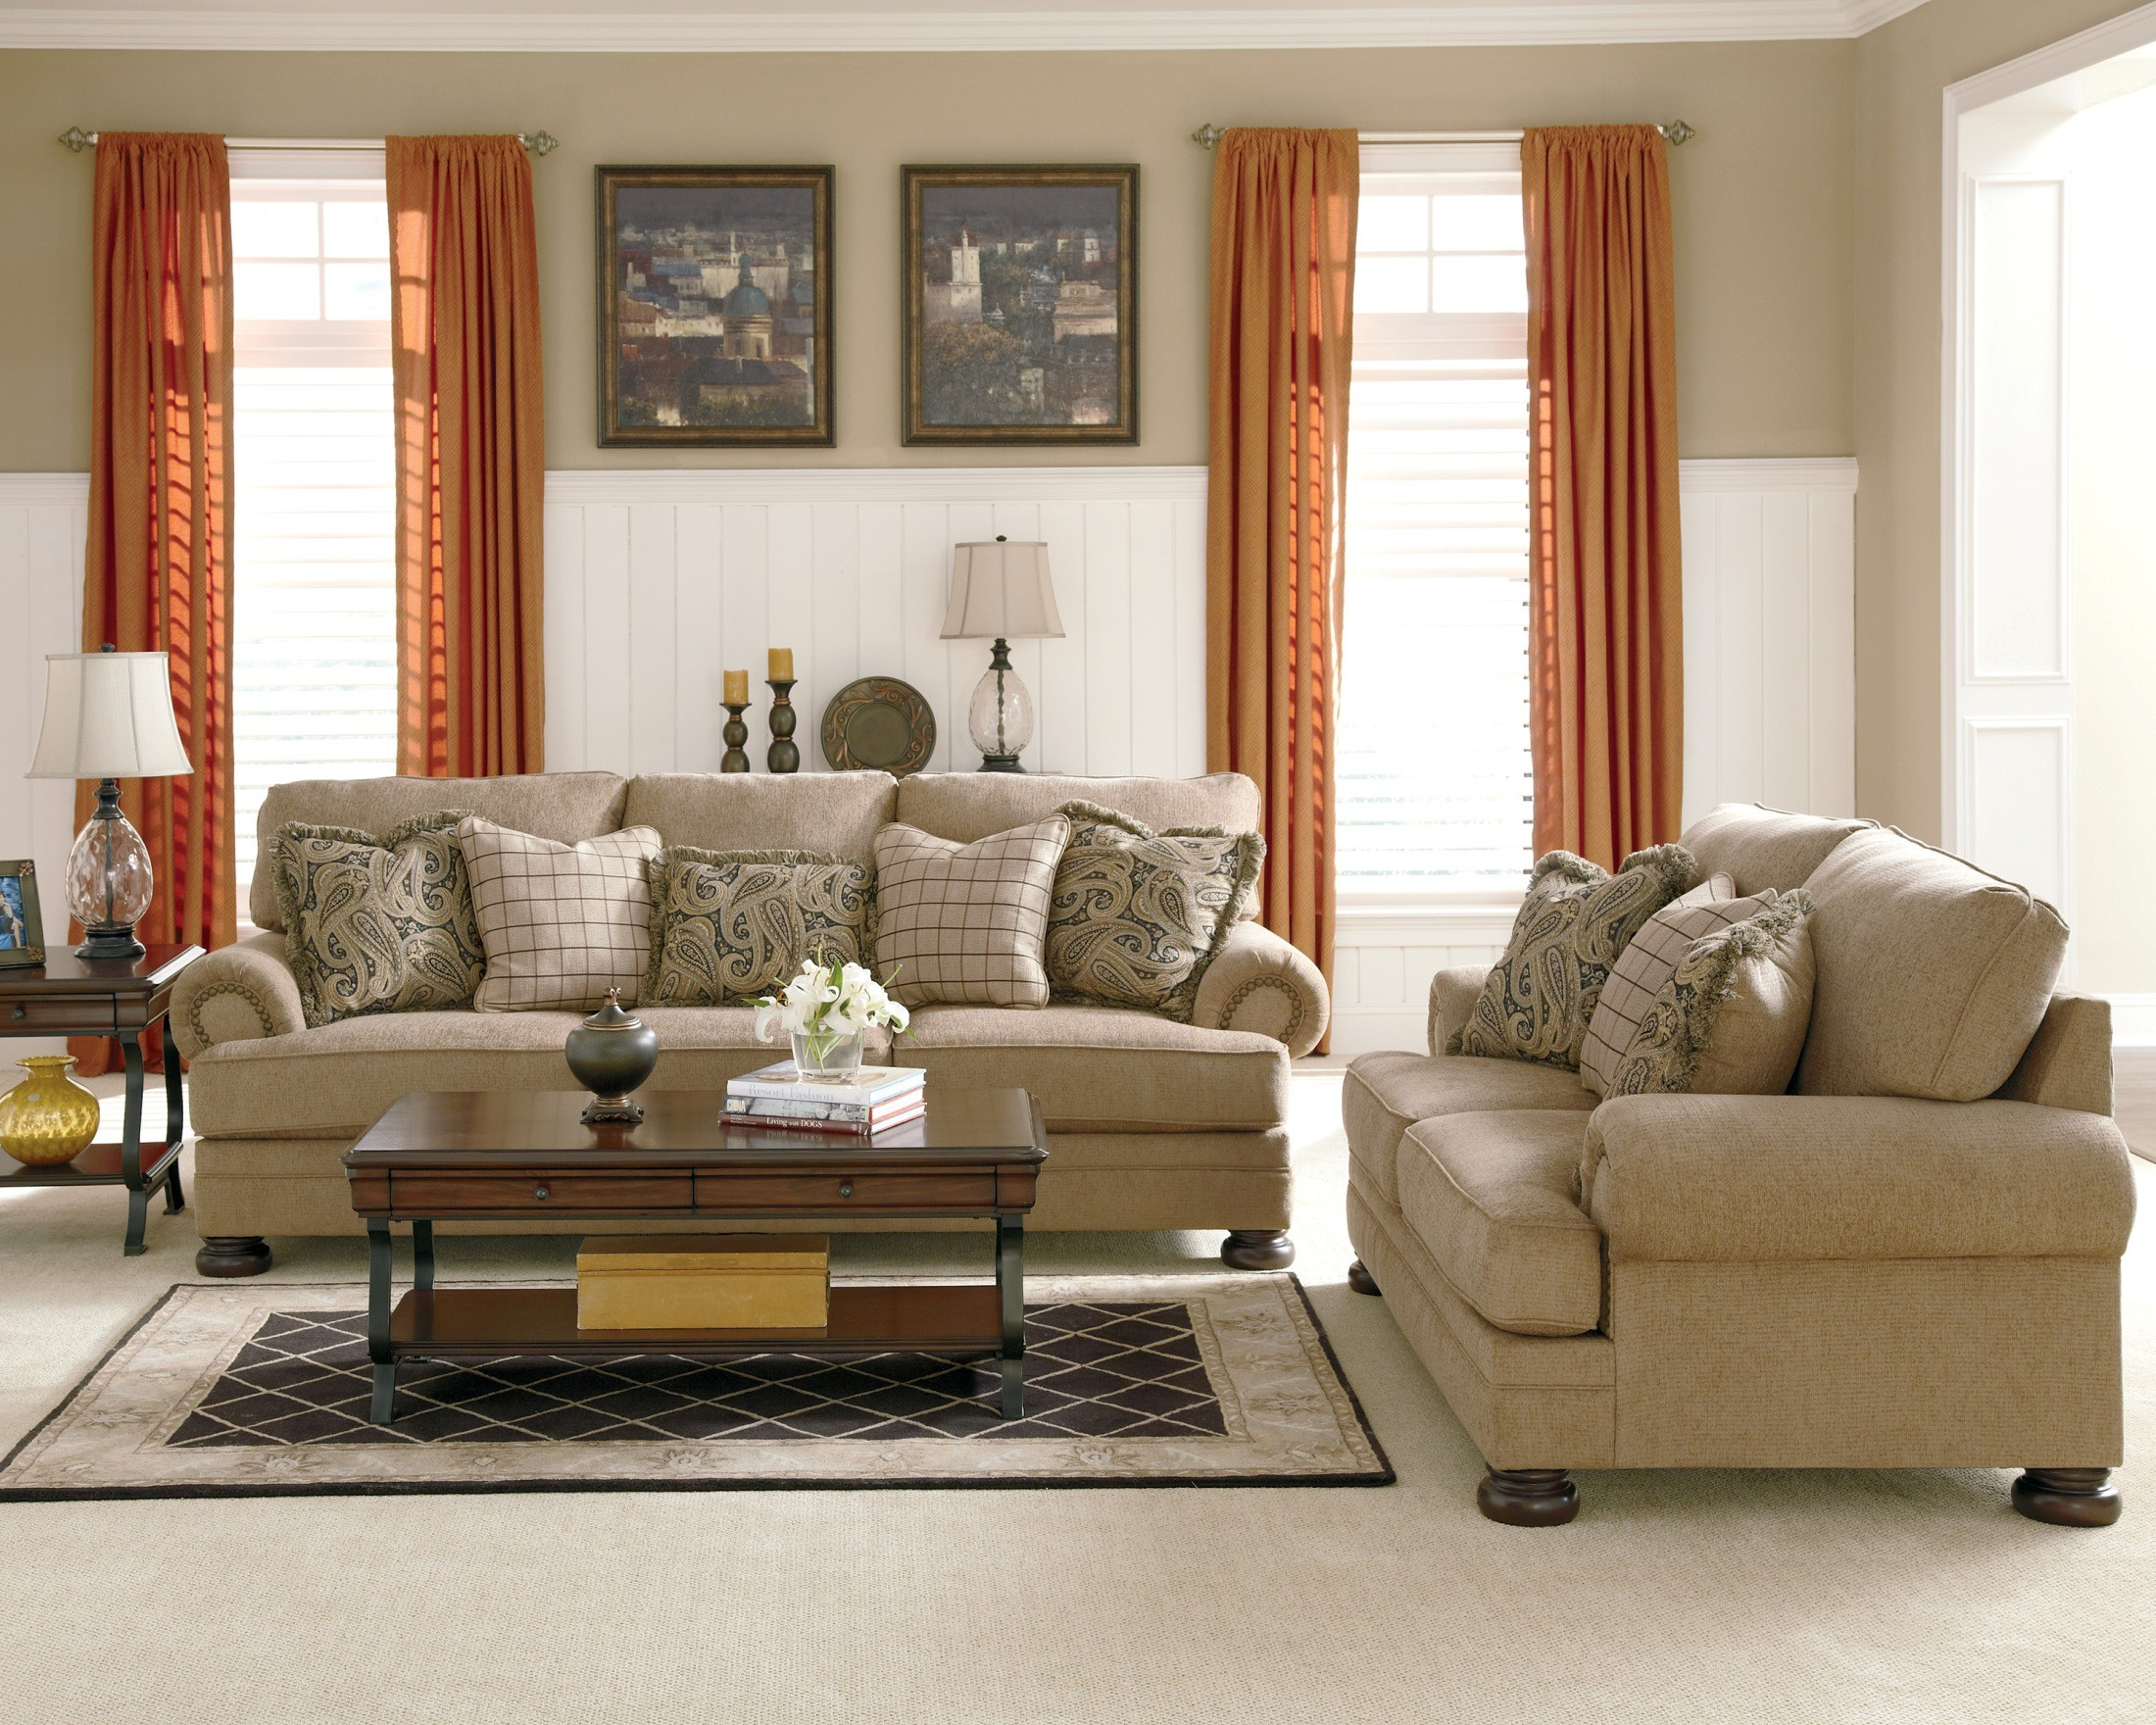 Keereel Sand Living Room Set From Ashley 38200 Coleman